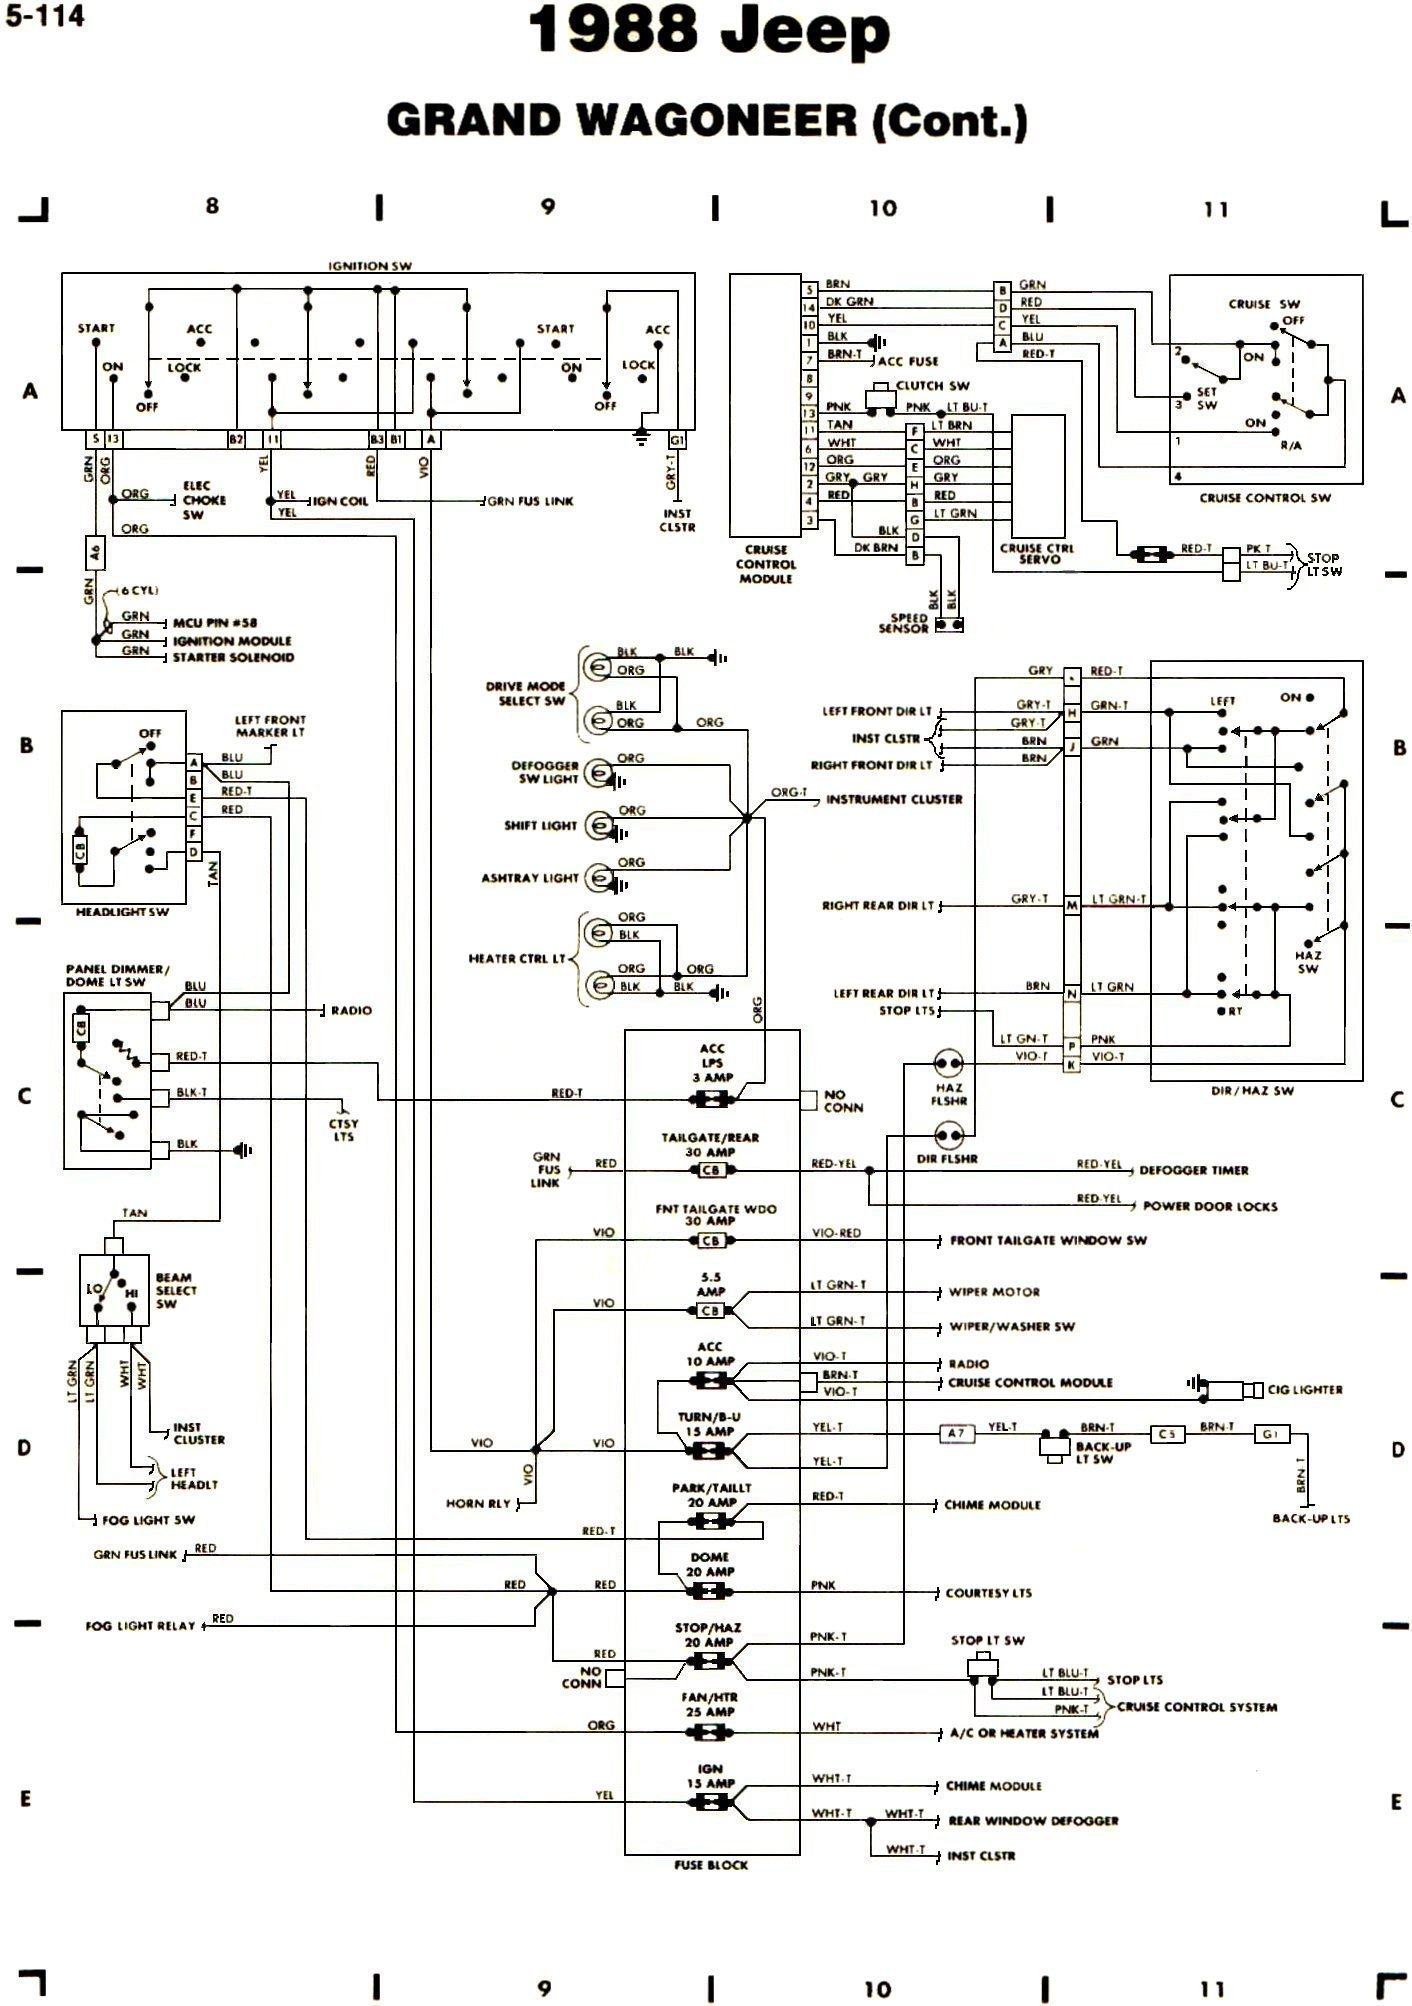 ... wiring diagrams for freightliner trucks the wiring diagram 2000  freightliner fld120 fuse box location 1997 freightliner